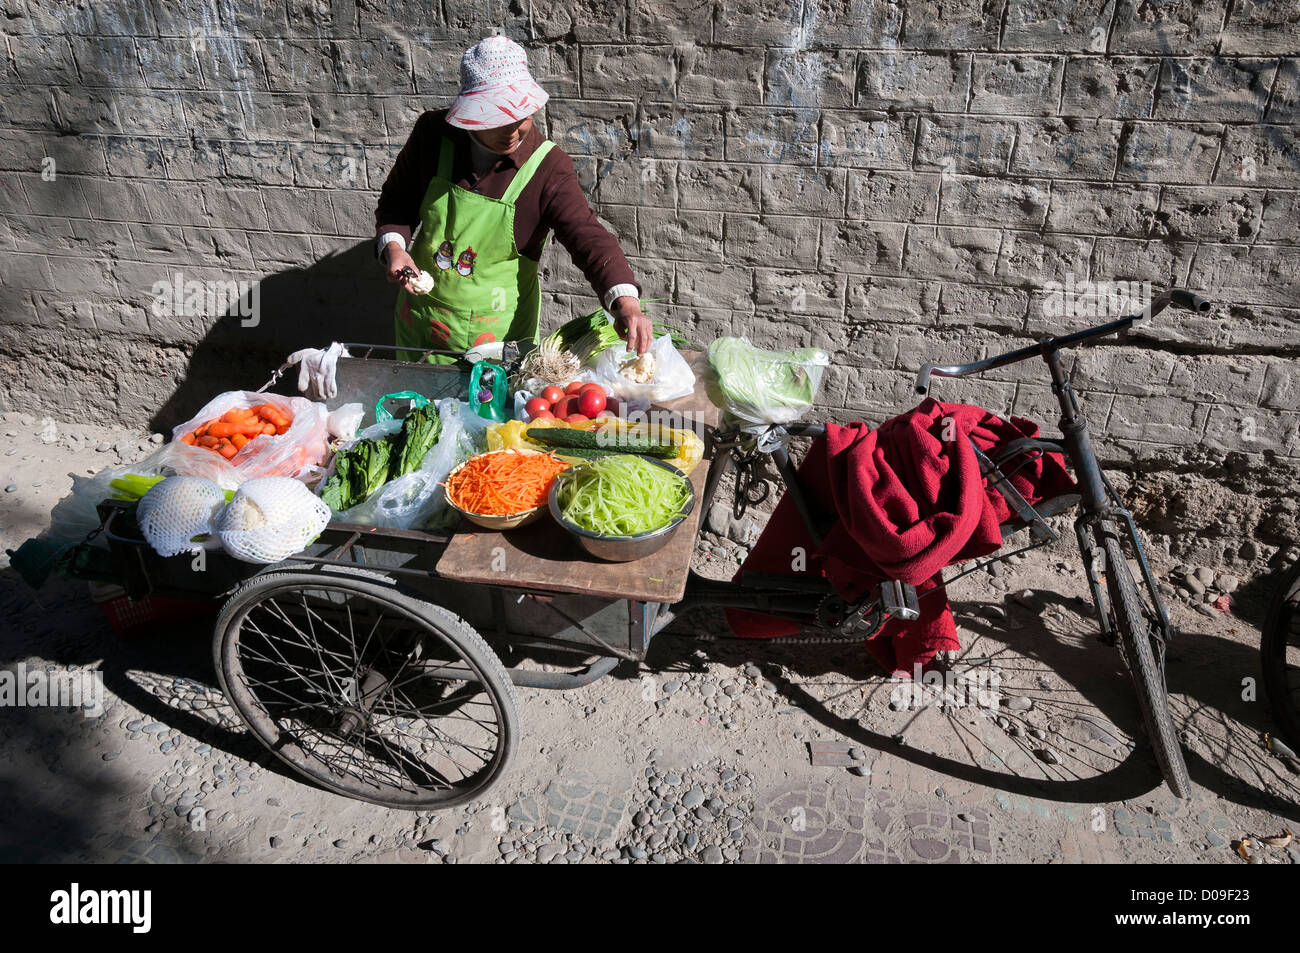 Woman sells fresh vegitables from bicycle card in dusty alley, Lhasa, Tibet - Stock Image